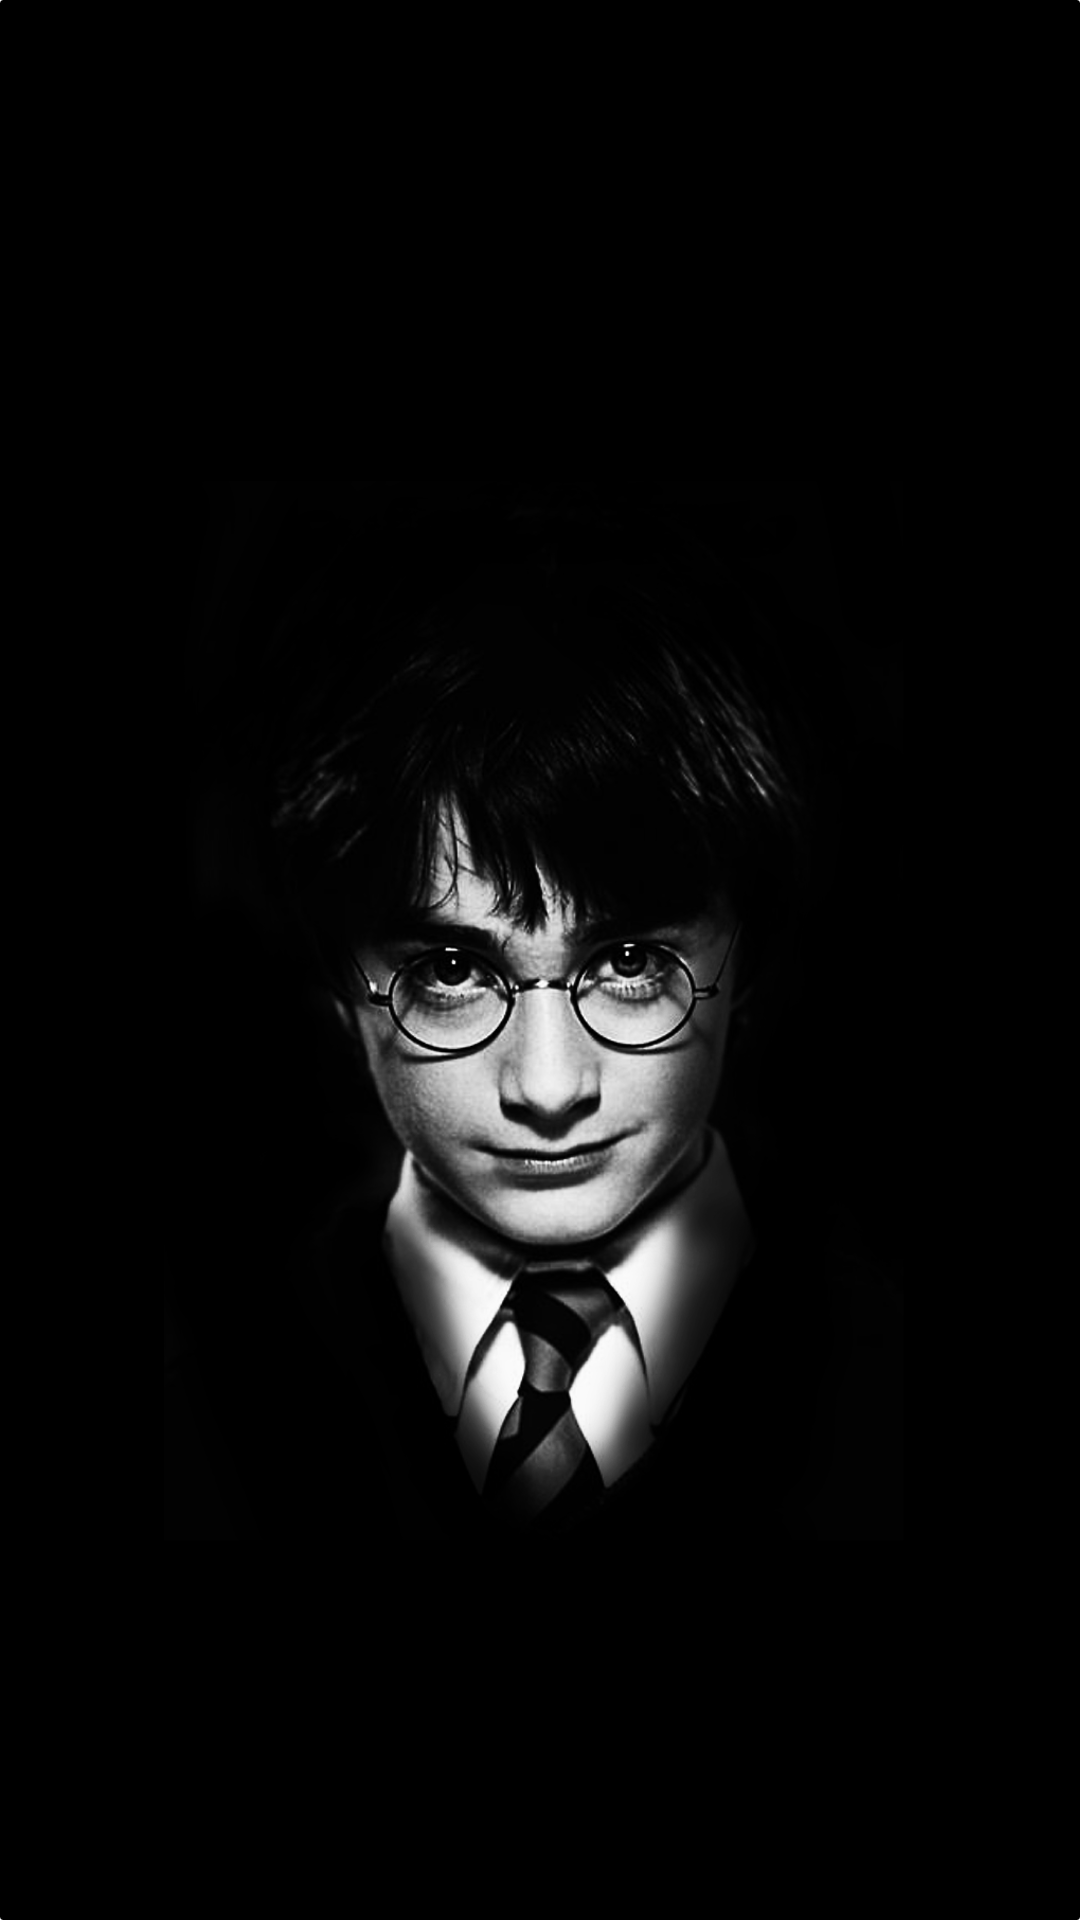 Most Inspiring Wallpaper Harry Potter Full Hd - 2VkzWZ  Collection_266869.png